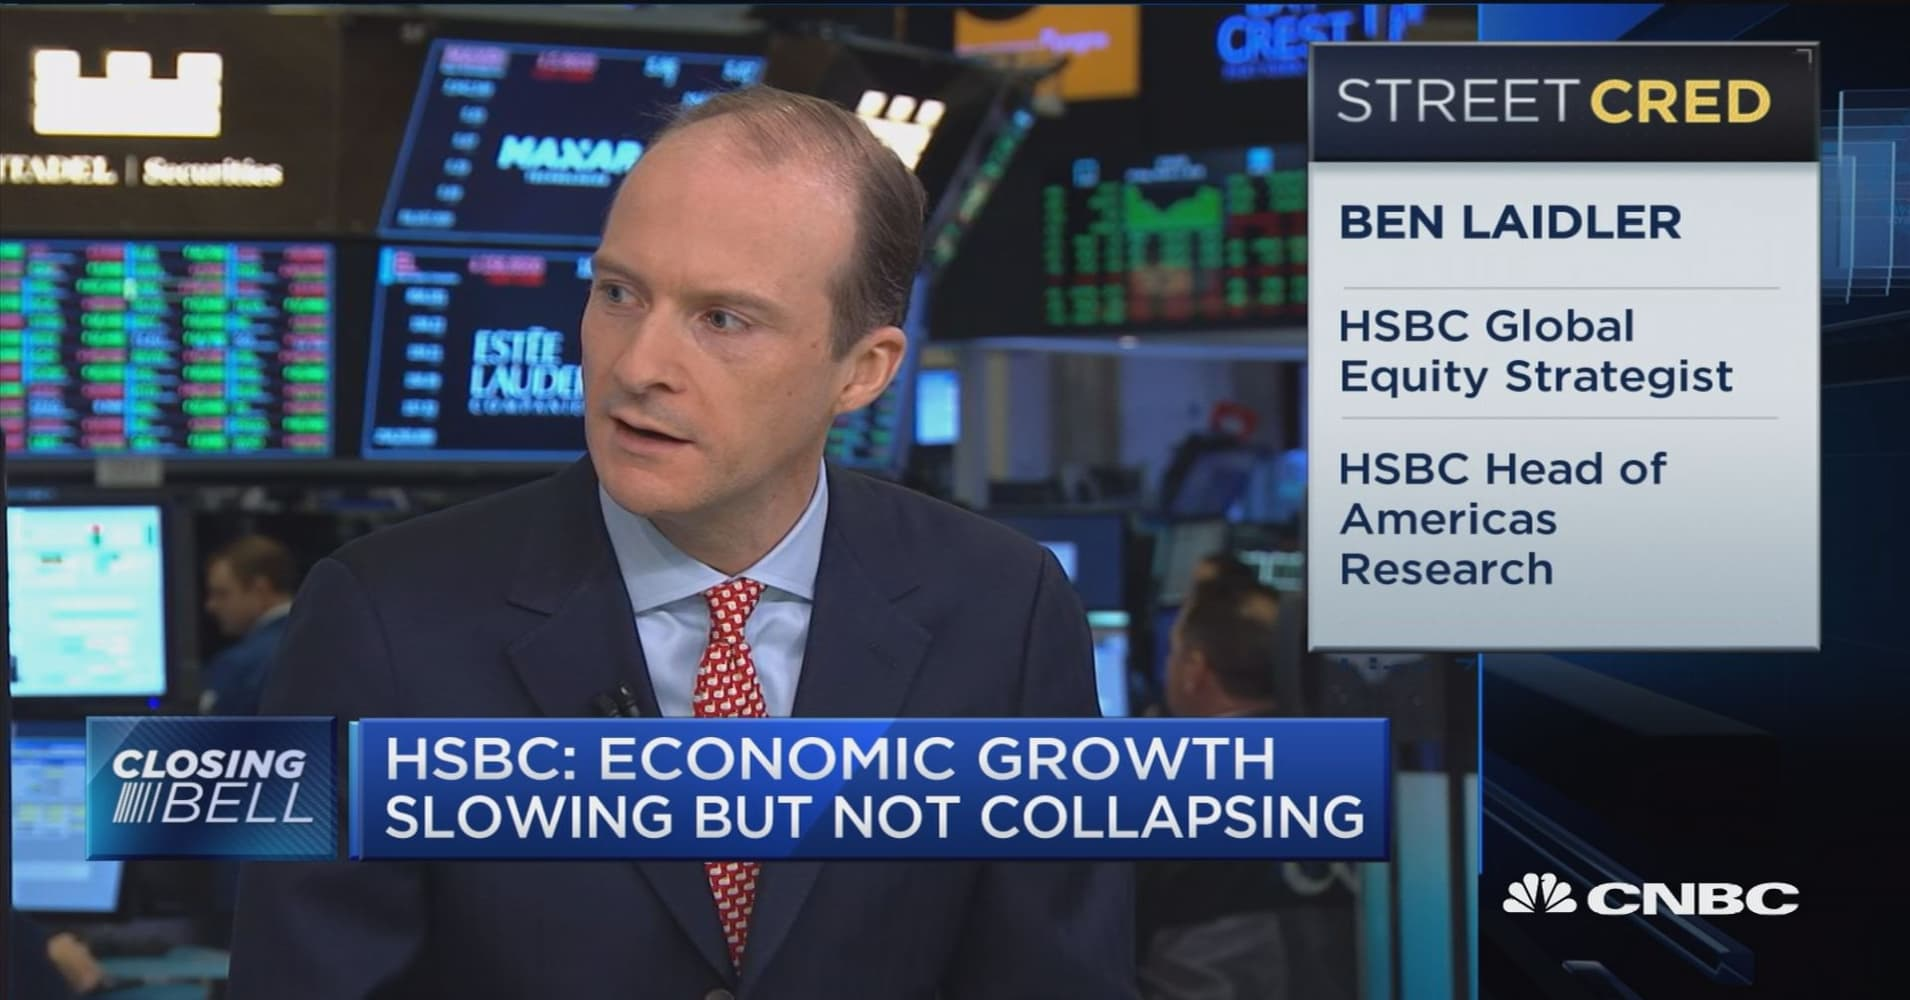 If U S equities are going to go higher, it will come from somewhere other  than the Fed, says Ben Laidler